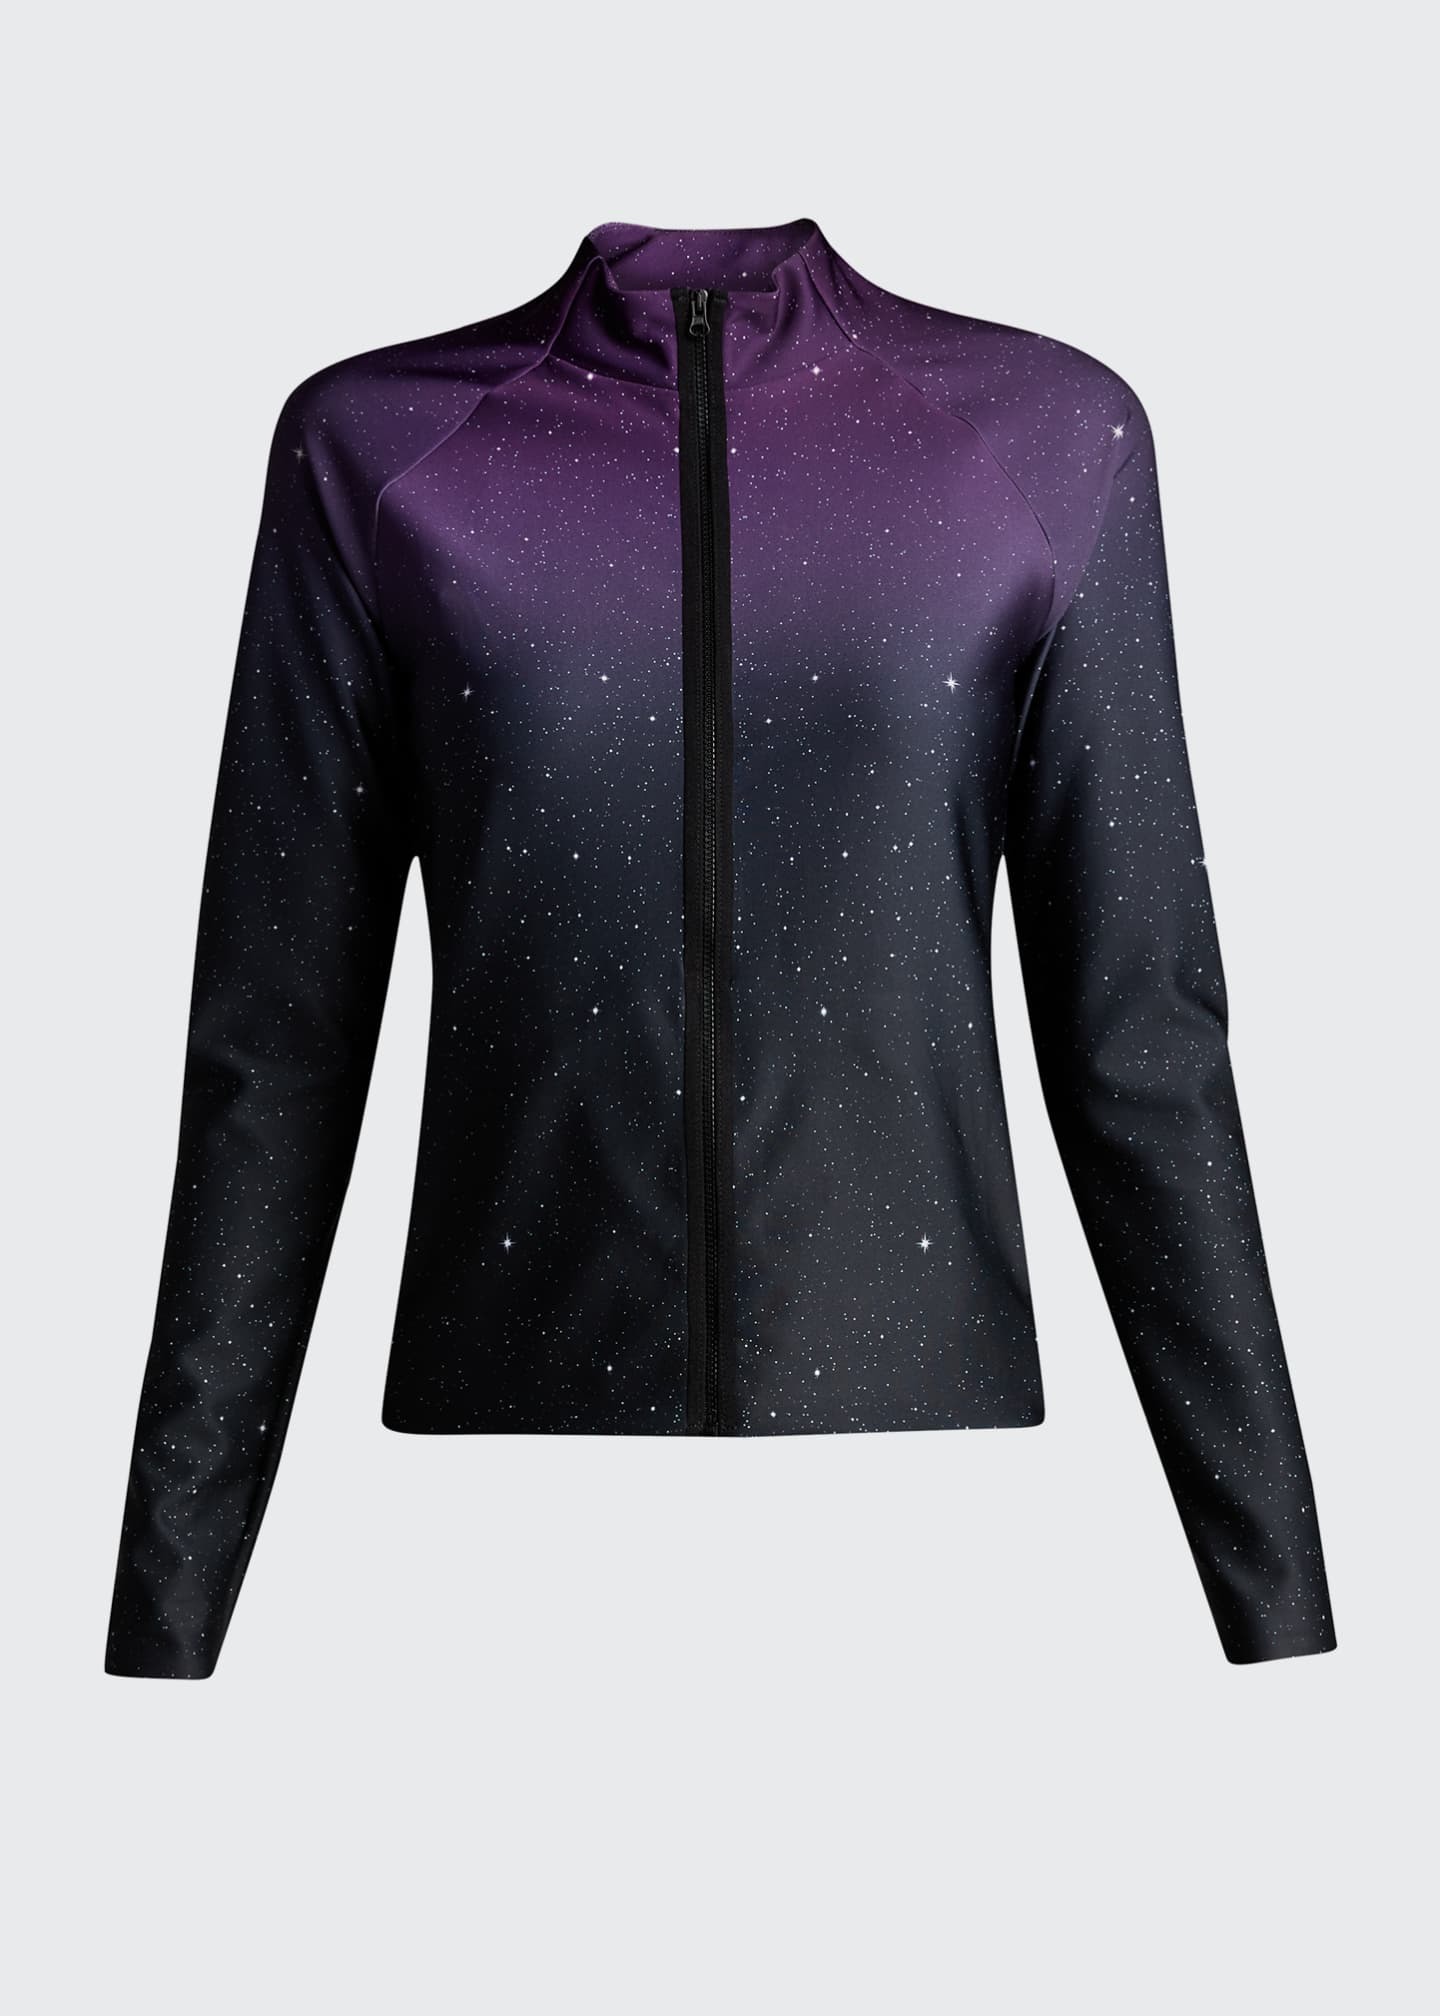 Image 5 of 5: Galaxia Bionic Jacket